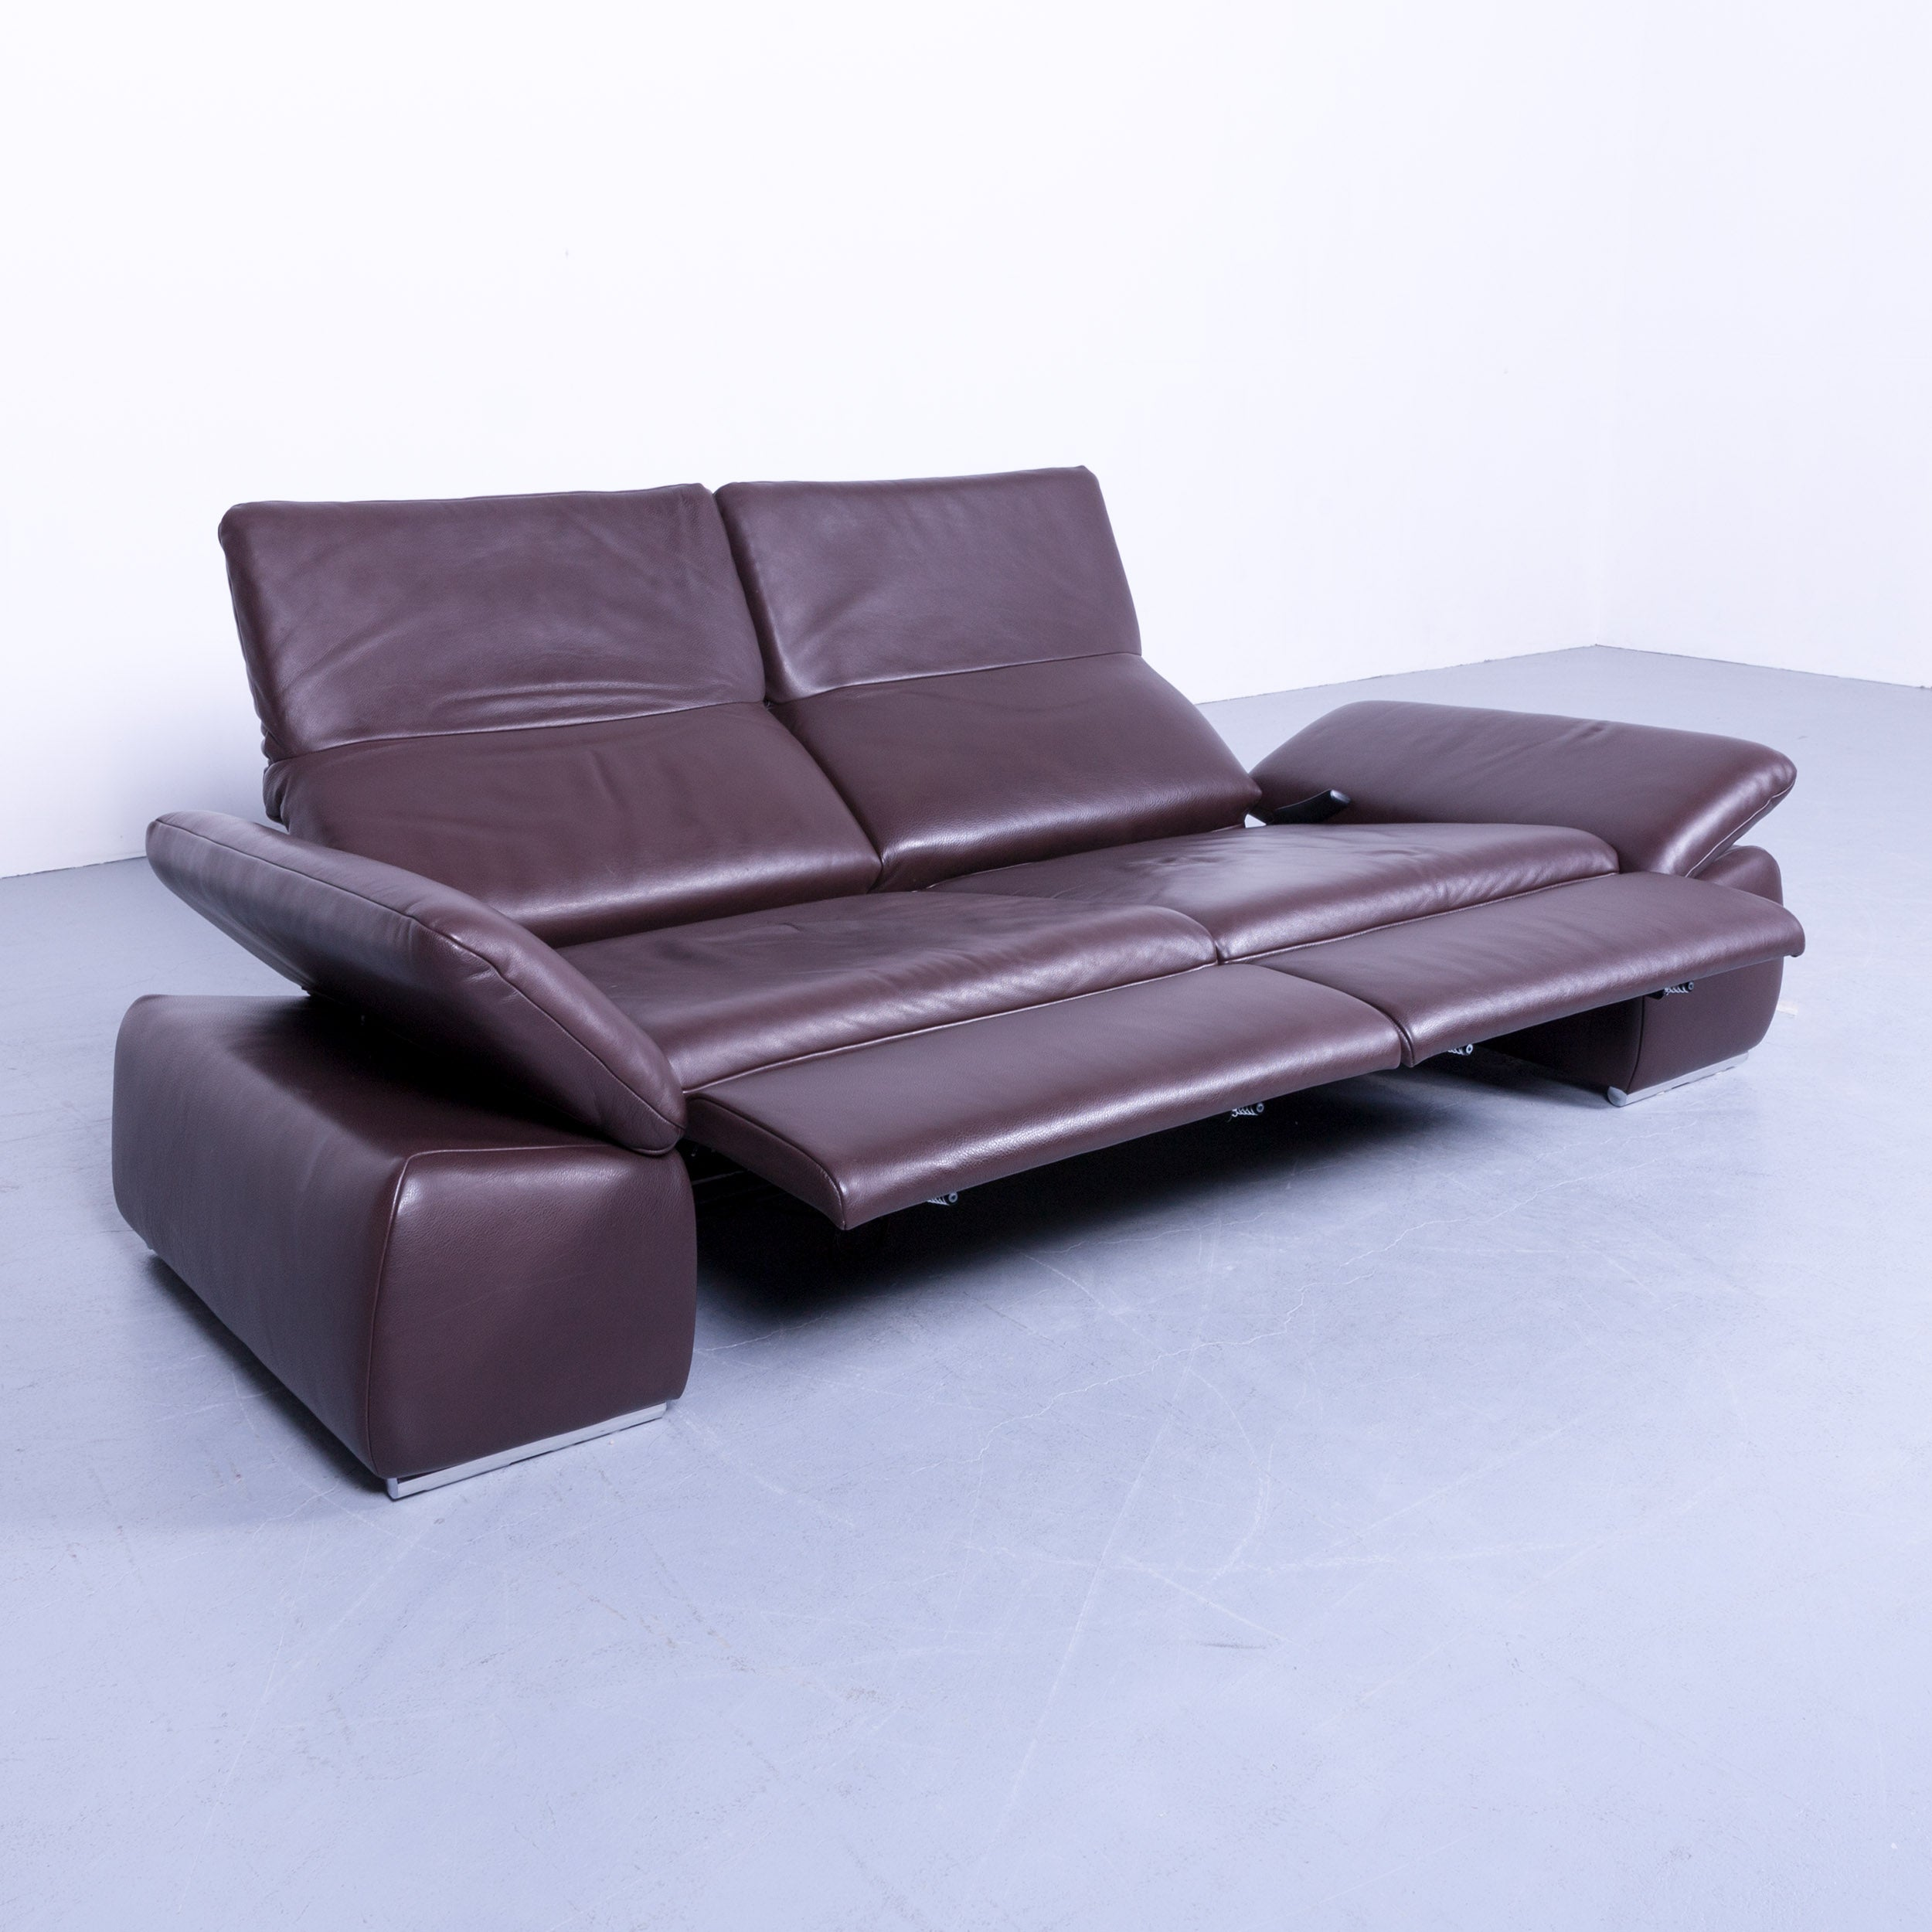 Beautiful Koinor Evento Designer Sofa Brown Mocca Leather Electric Function  Modern At Stdibs With Polstermbel Lhne